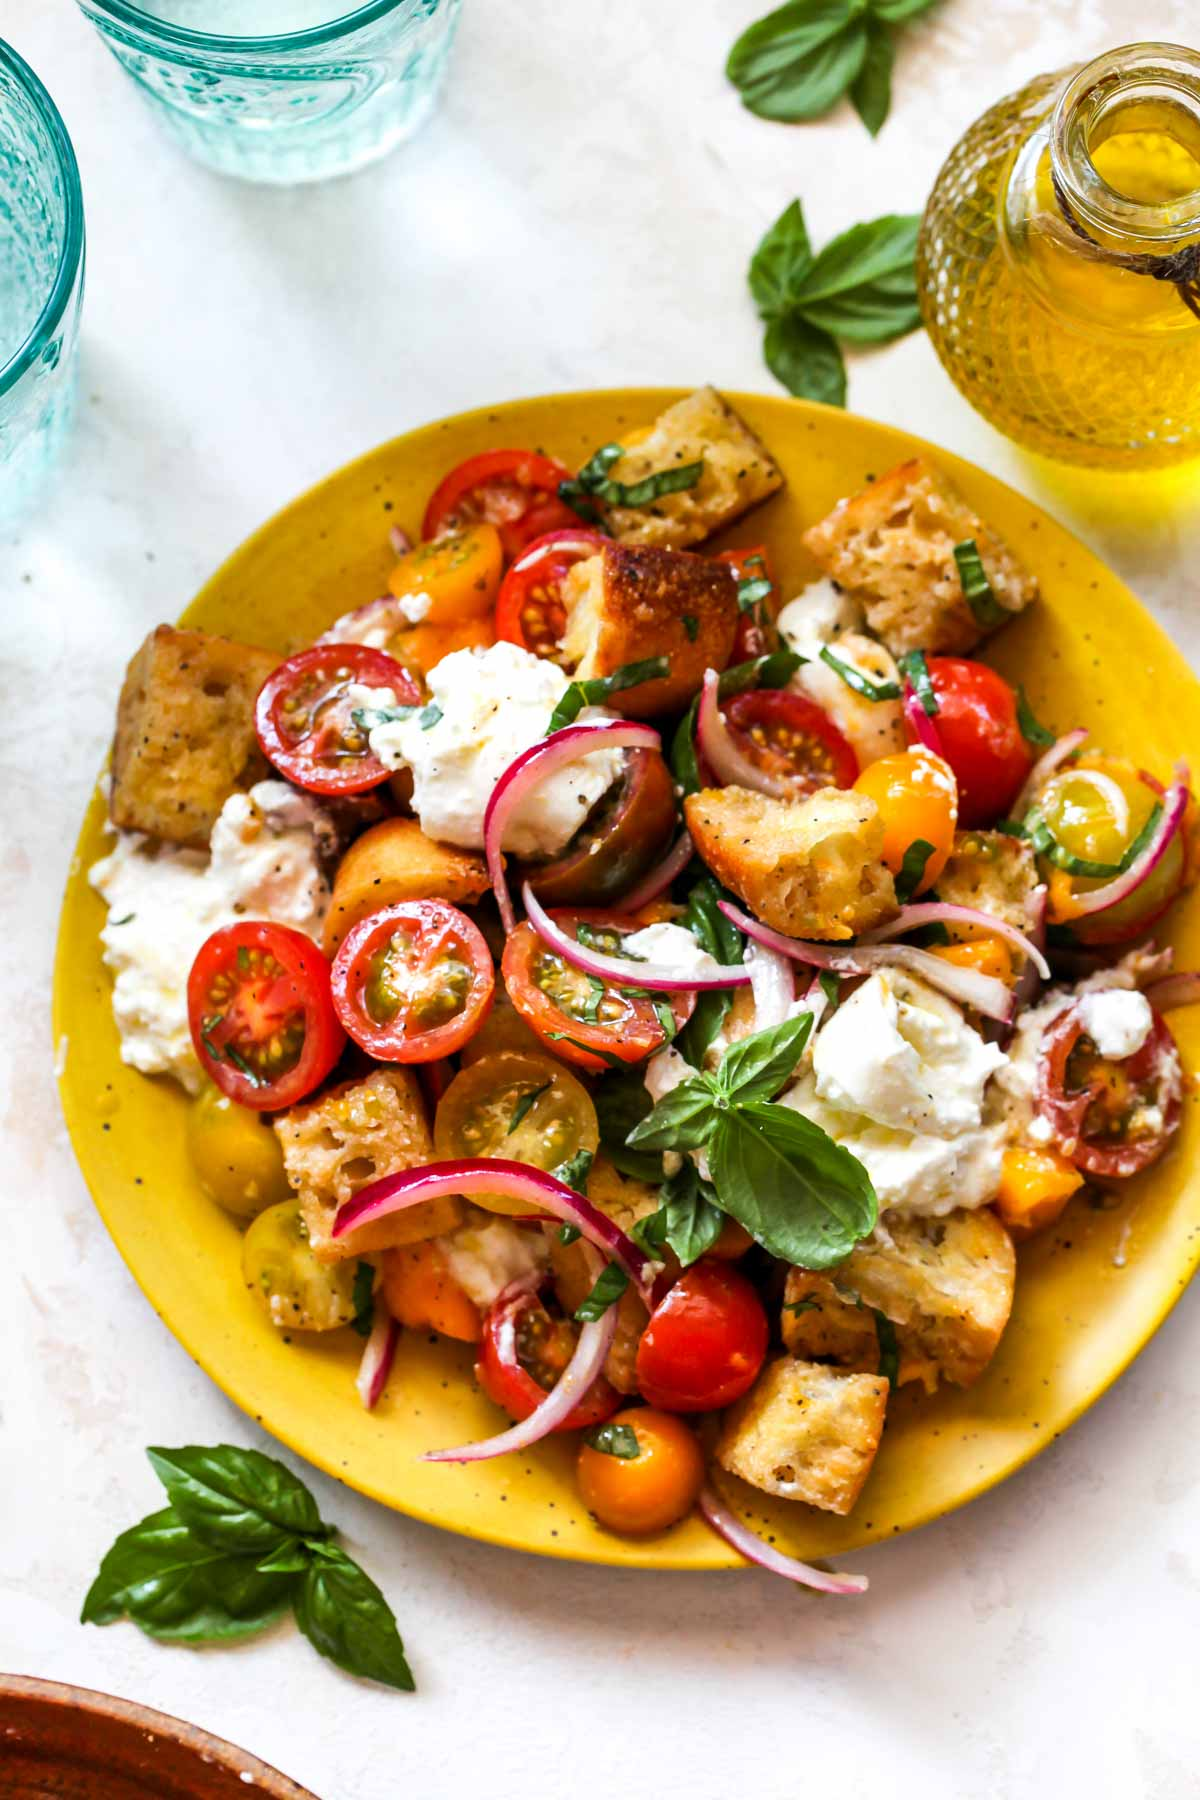 Panzanella salad served on a yellow plate topped with basil